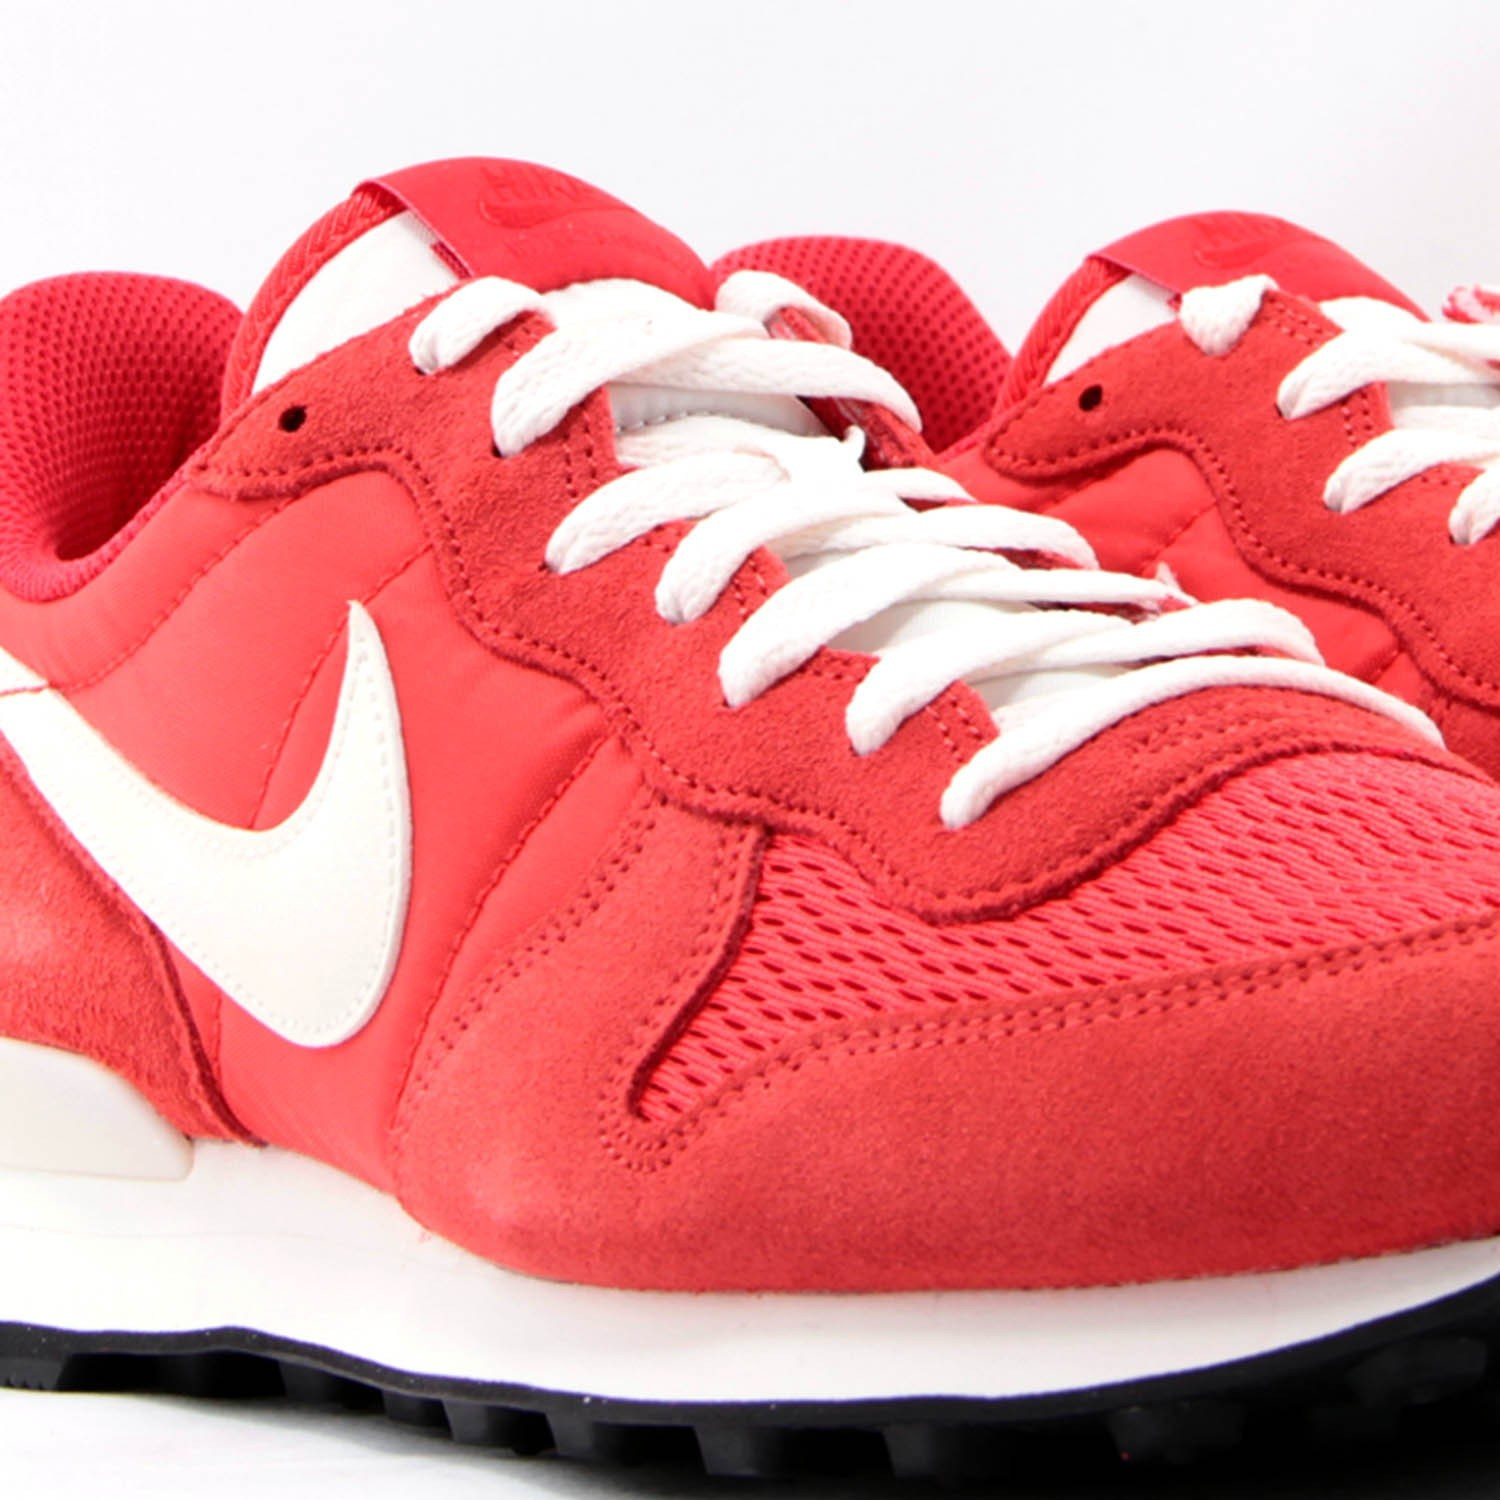 Nike Internationalist rojo